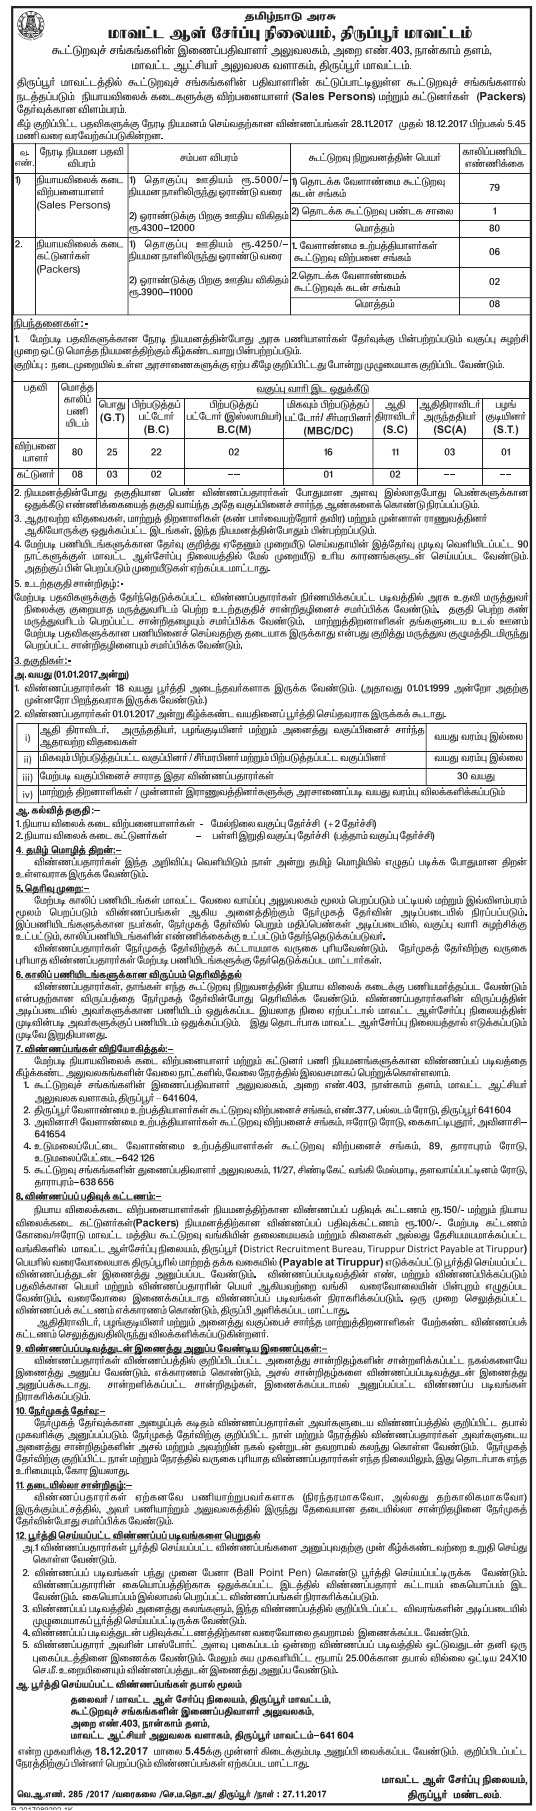 Ration Shop Tiruppur Recruitment 2017-88 Sales Person, Packer Apply